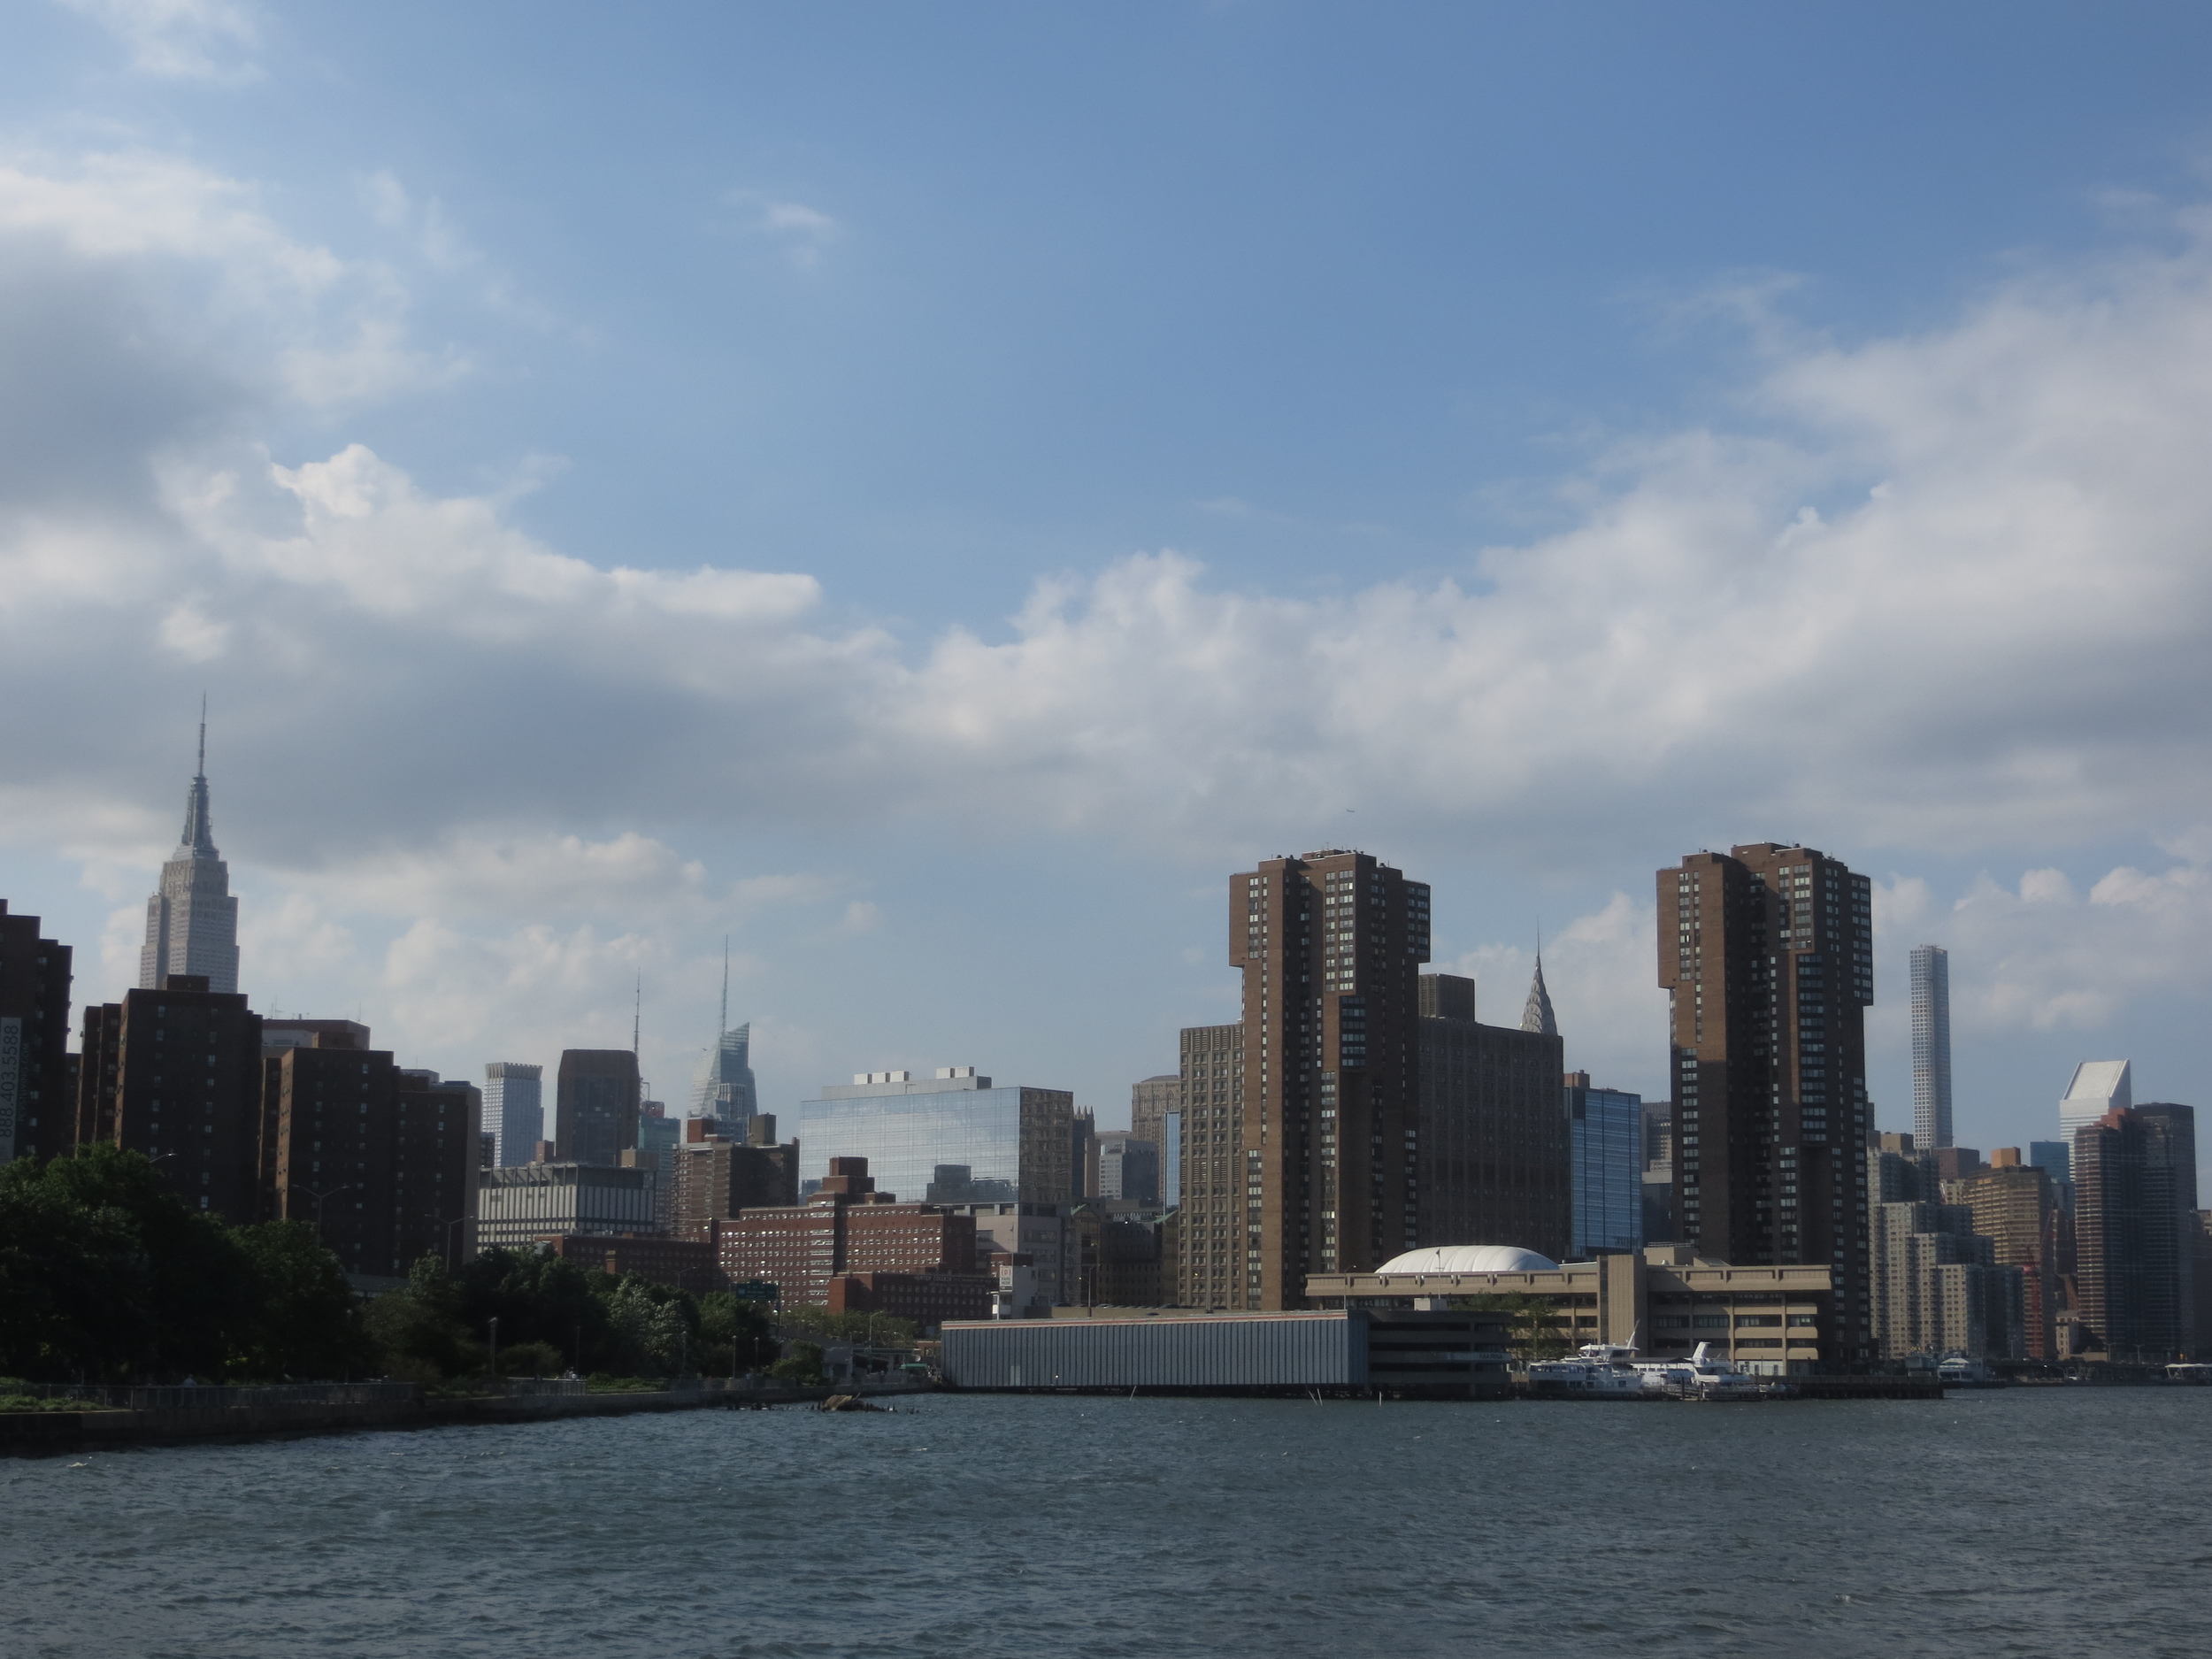 Midtown over East River